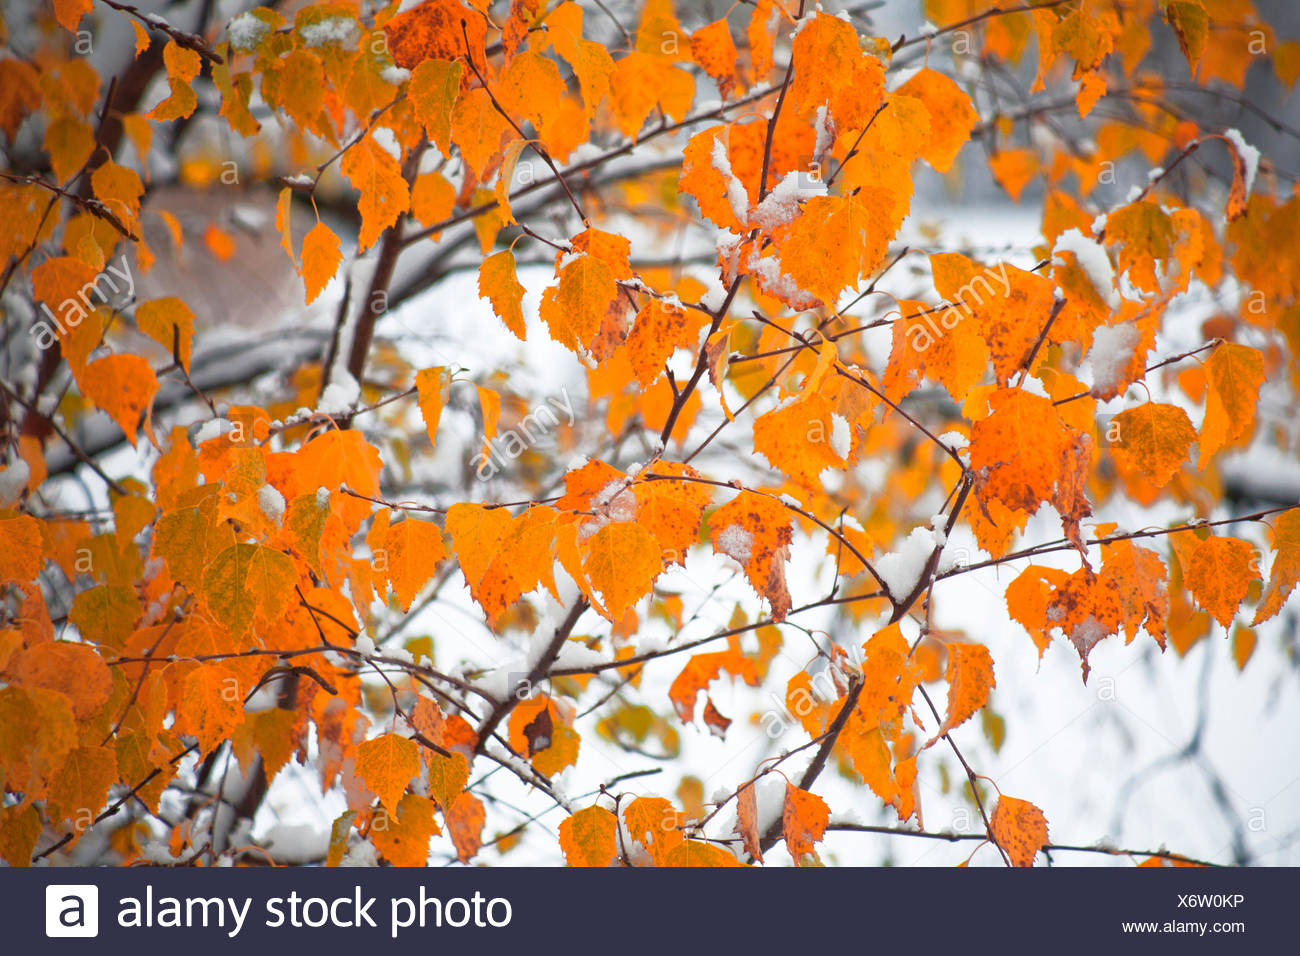 Birch leaves after winter burglary - Stock Image